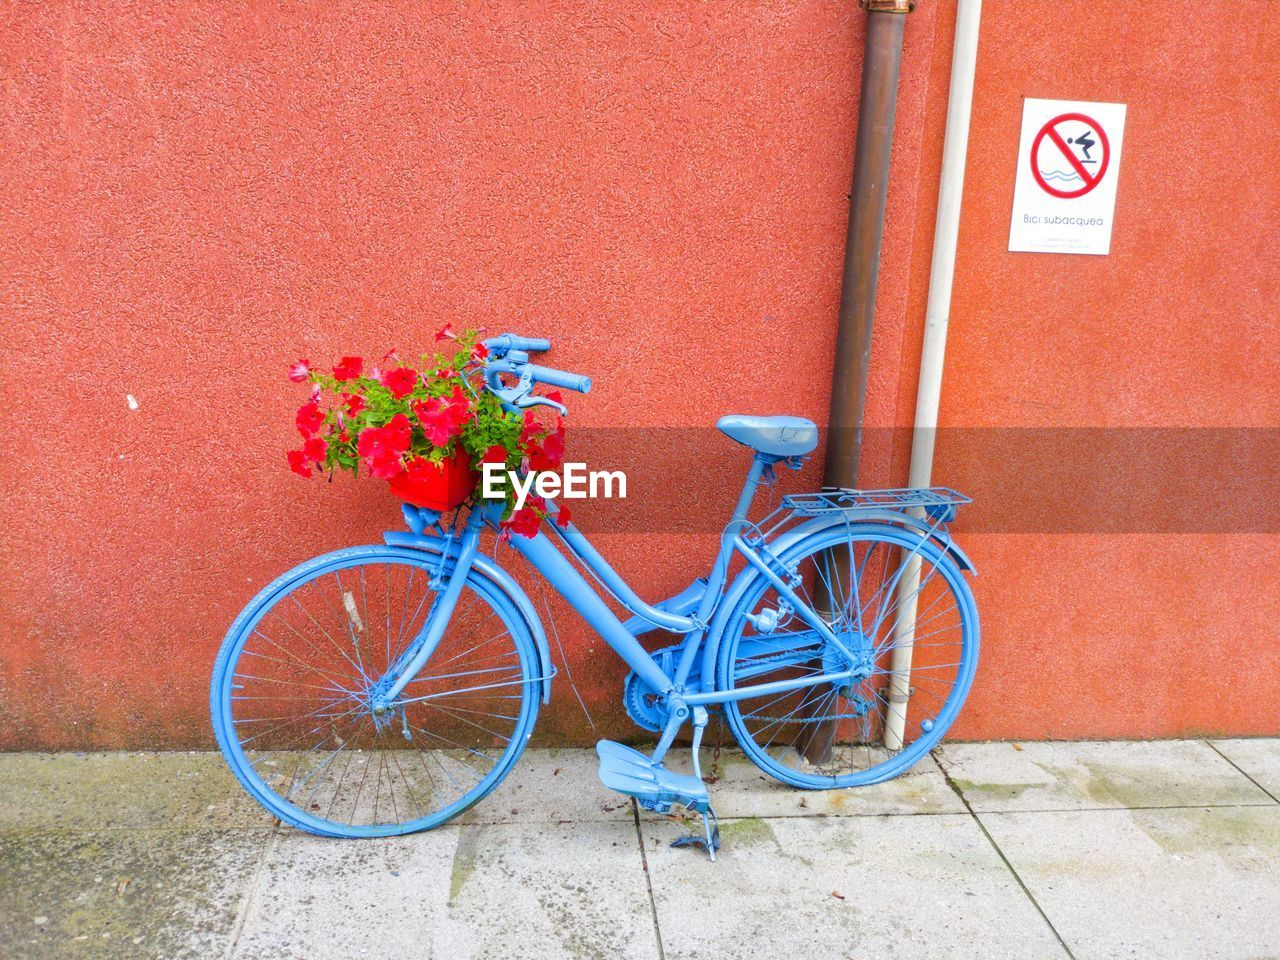 Bicycle parked against red wall